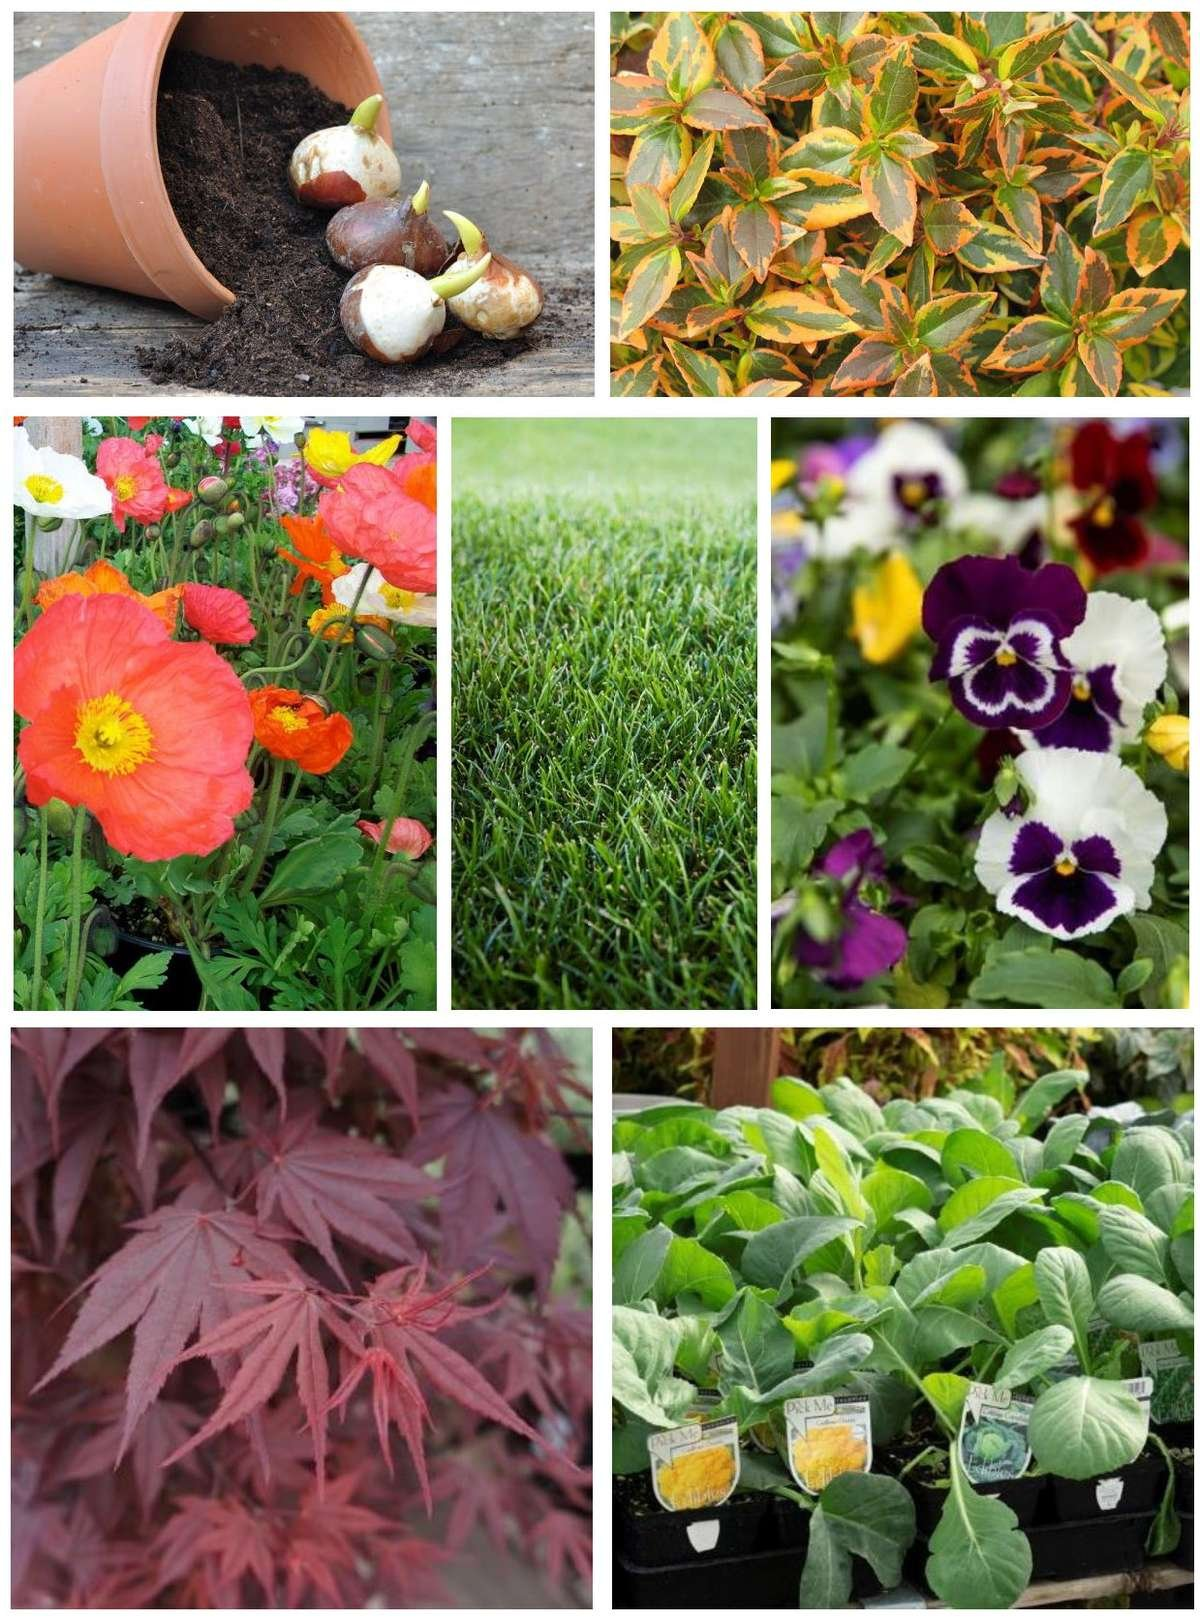 Collage of Fall Plants